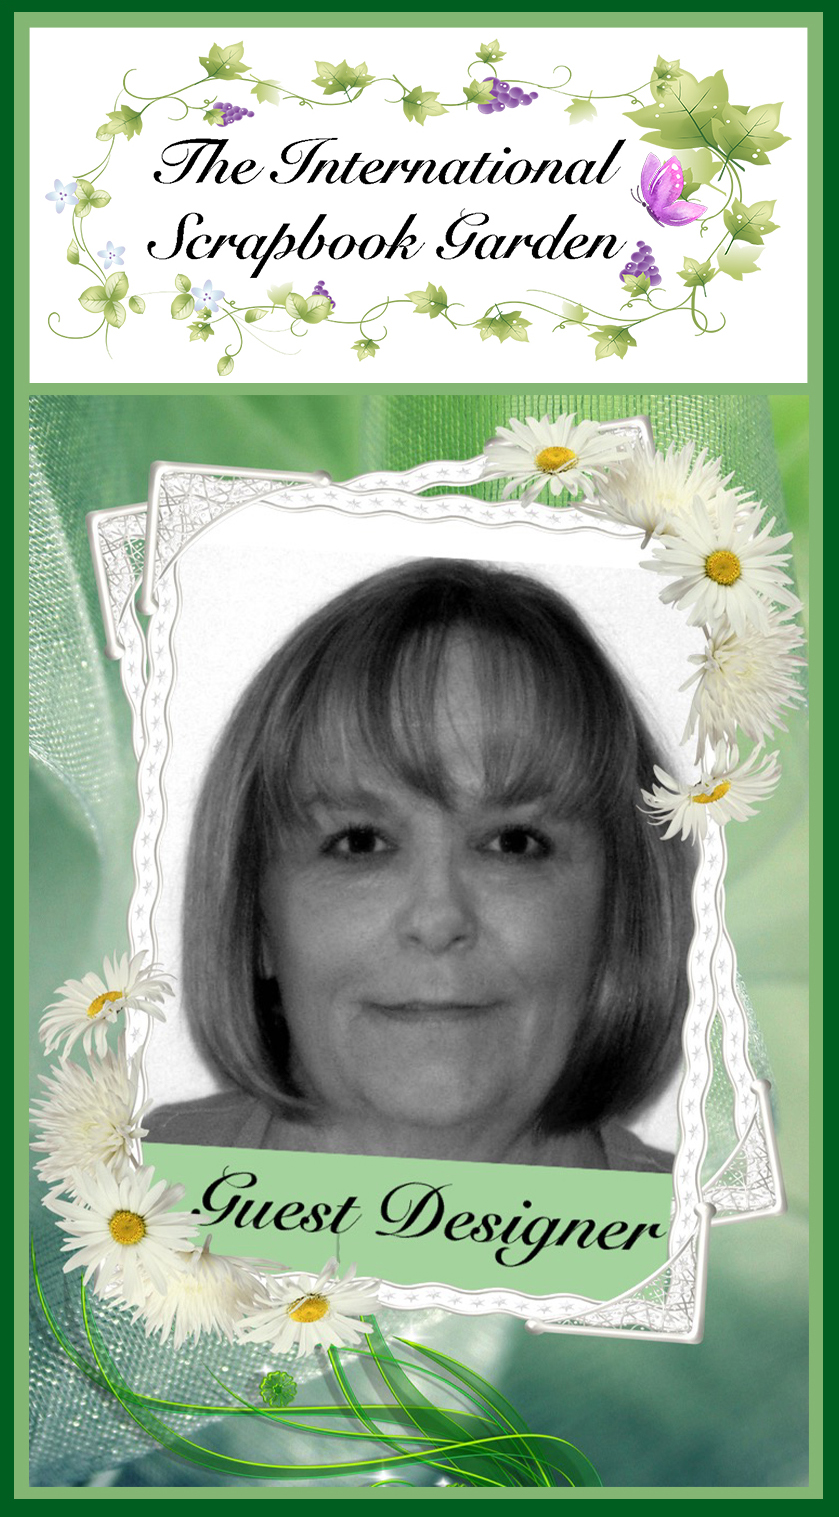 Debbie Burns - Hi everyone, my name is Debbie Burns and I'm excited to be guest designing for The International Scrapbook Garden.  I've been scrapbooking for 18 years.  I love to create shabby chic layouts incorporated mixed media.  I live in Maryland and am a single mom to two grown children and one precious dog.  By day I'm an Assistant Project Manager for a general contracting company specializing in commercial interior work.  It's a fast paced job and many long hours.  To unwind I love to scrapbook and work outside in my flower gardens.